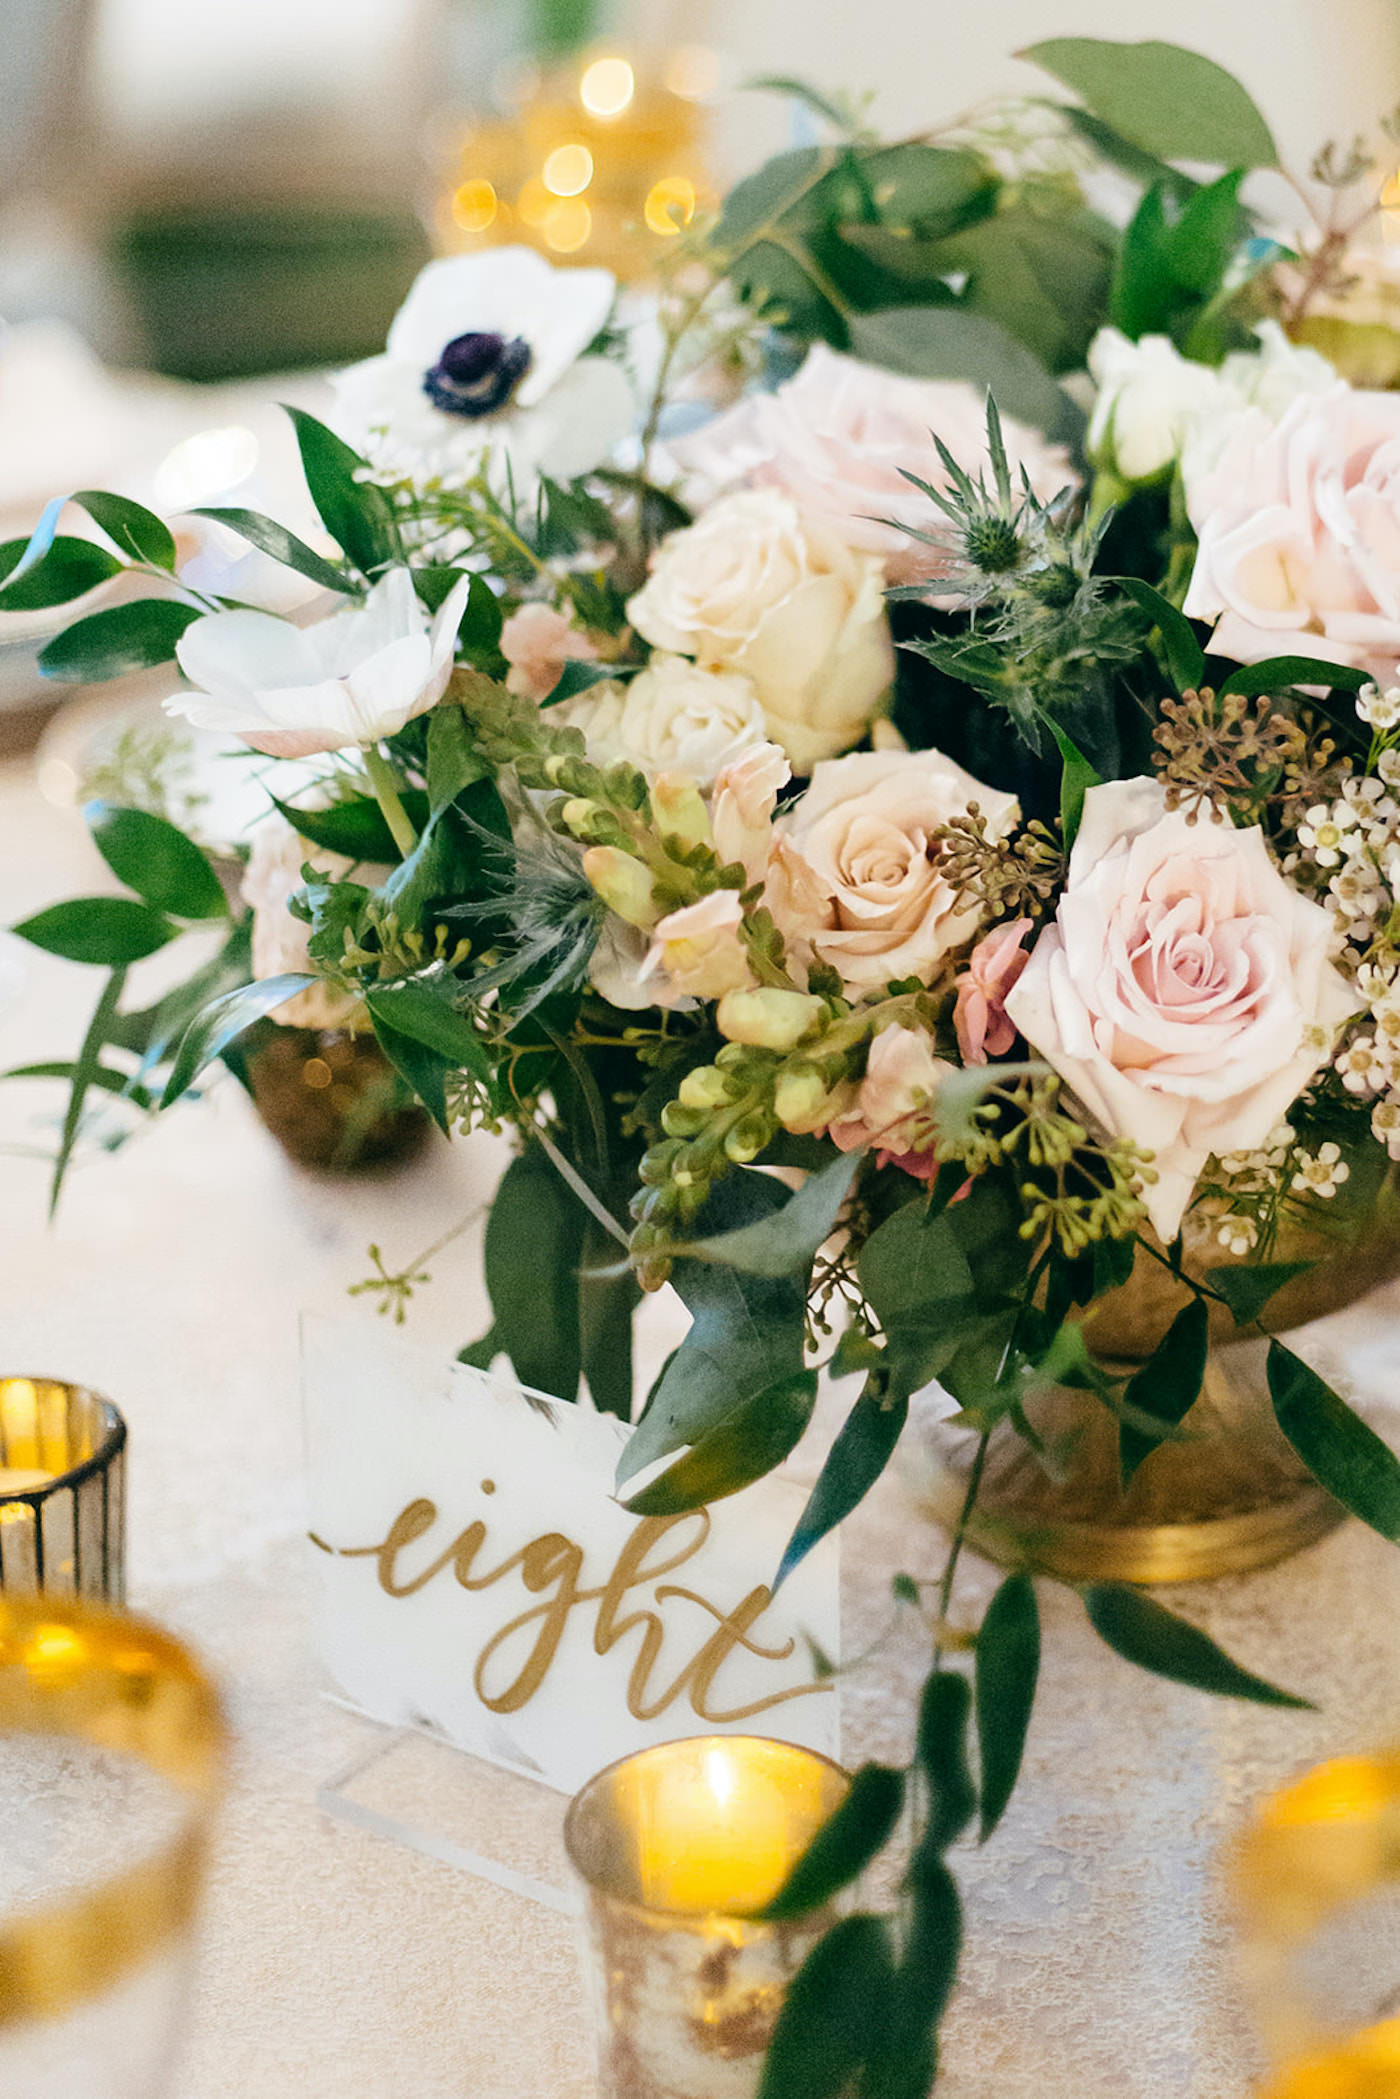 Elegant Florida Wedding Decor and Reception, Acrylic Calligraphy Table Numbers   Luxurious Blush Pink Florals and Greenery, Gold Table Setting Accents   Sarasota Wedding Planner NK Weddings   Marie Selby Botanical Gardens